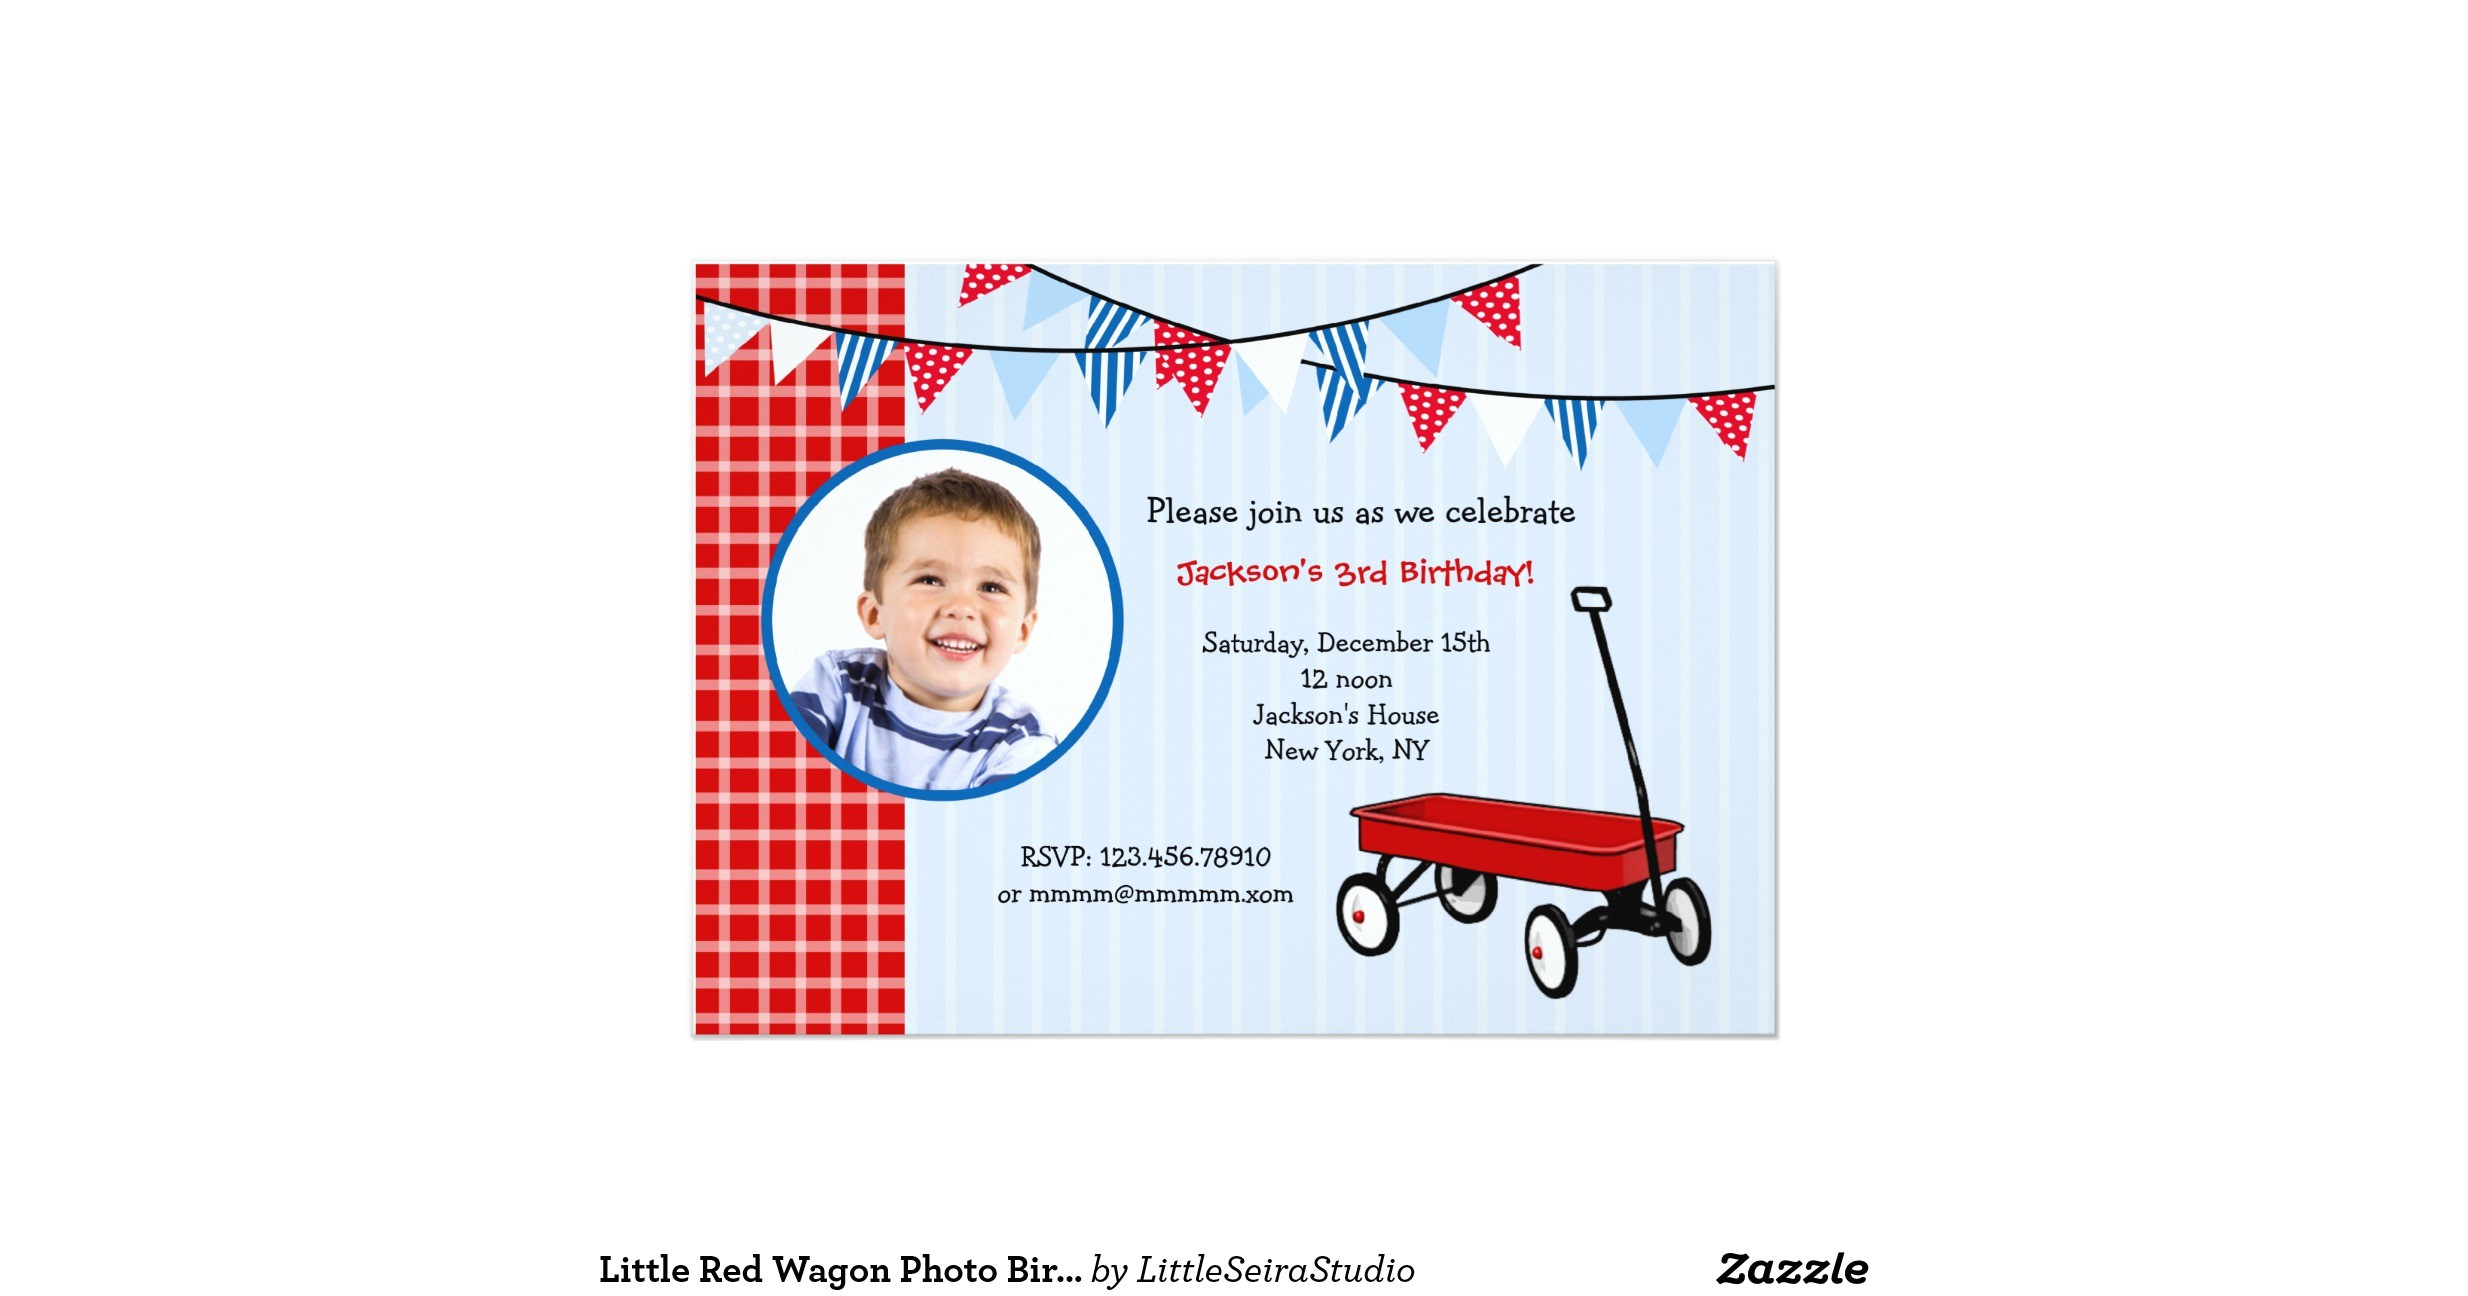 little red wagon photo birthday party invitations